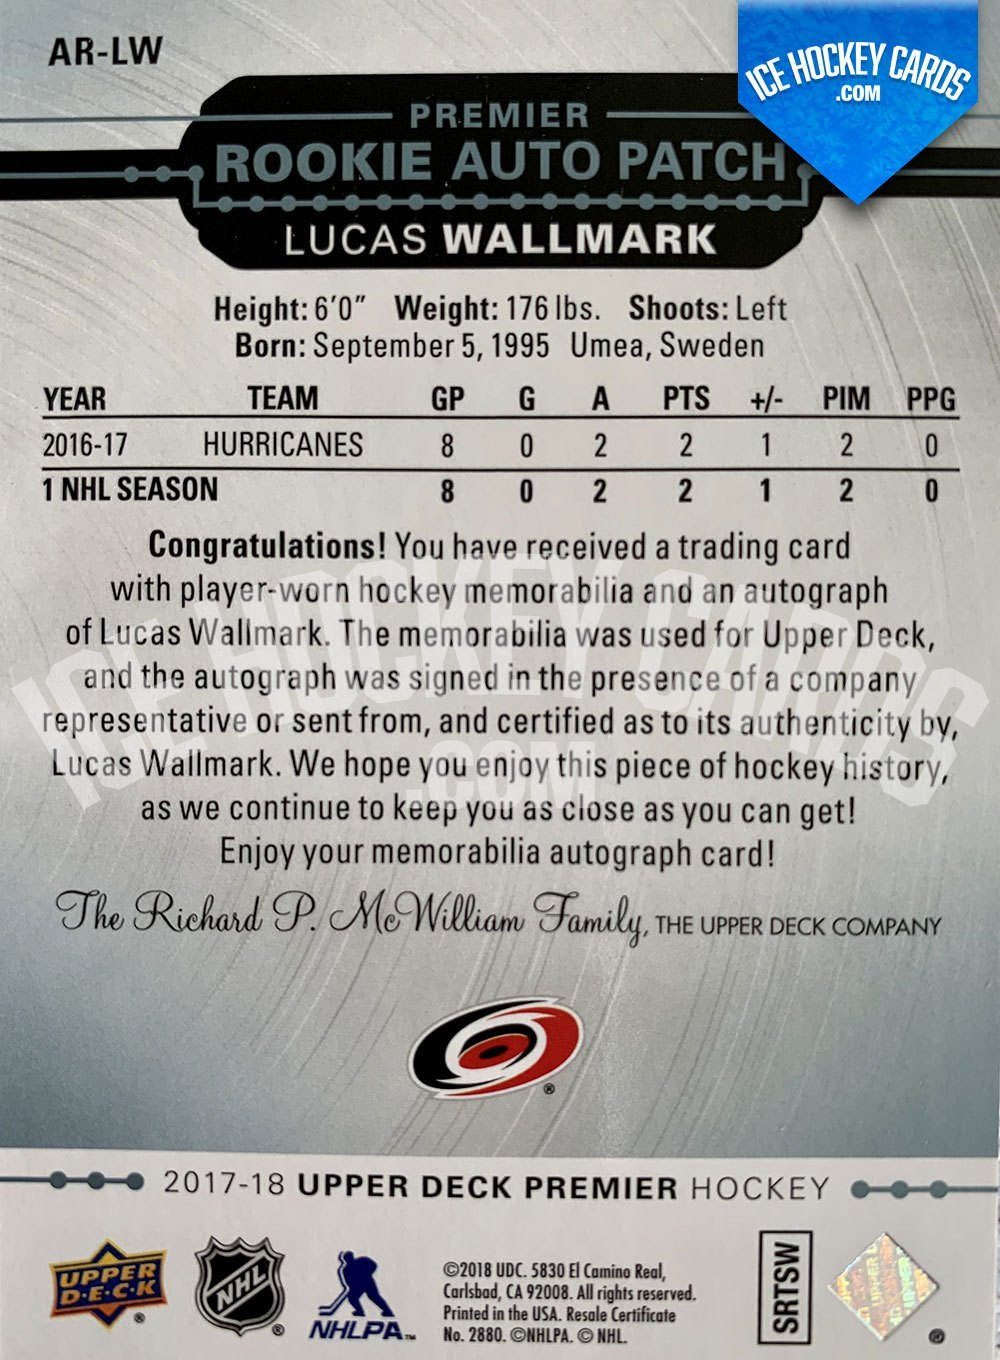 Upper Deck - Premier Hockey 2017-18 - Lucas Wallmark Premier Rookie Auto Patch Card # up to 25 back RARE